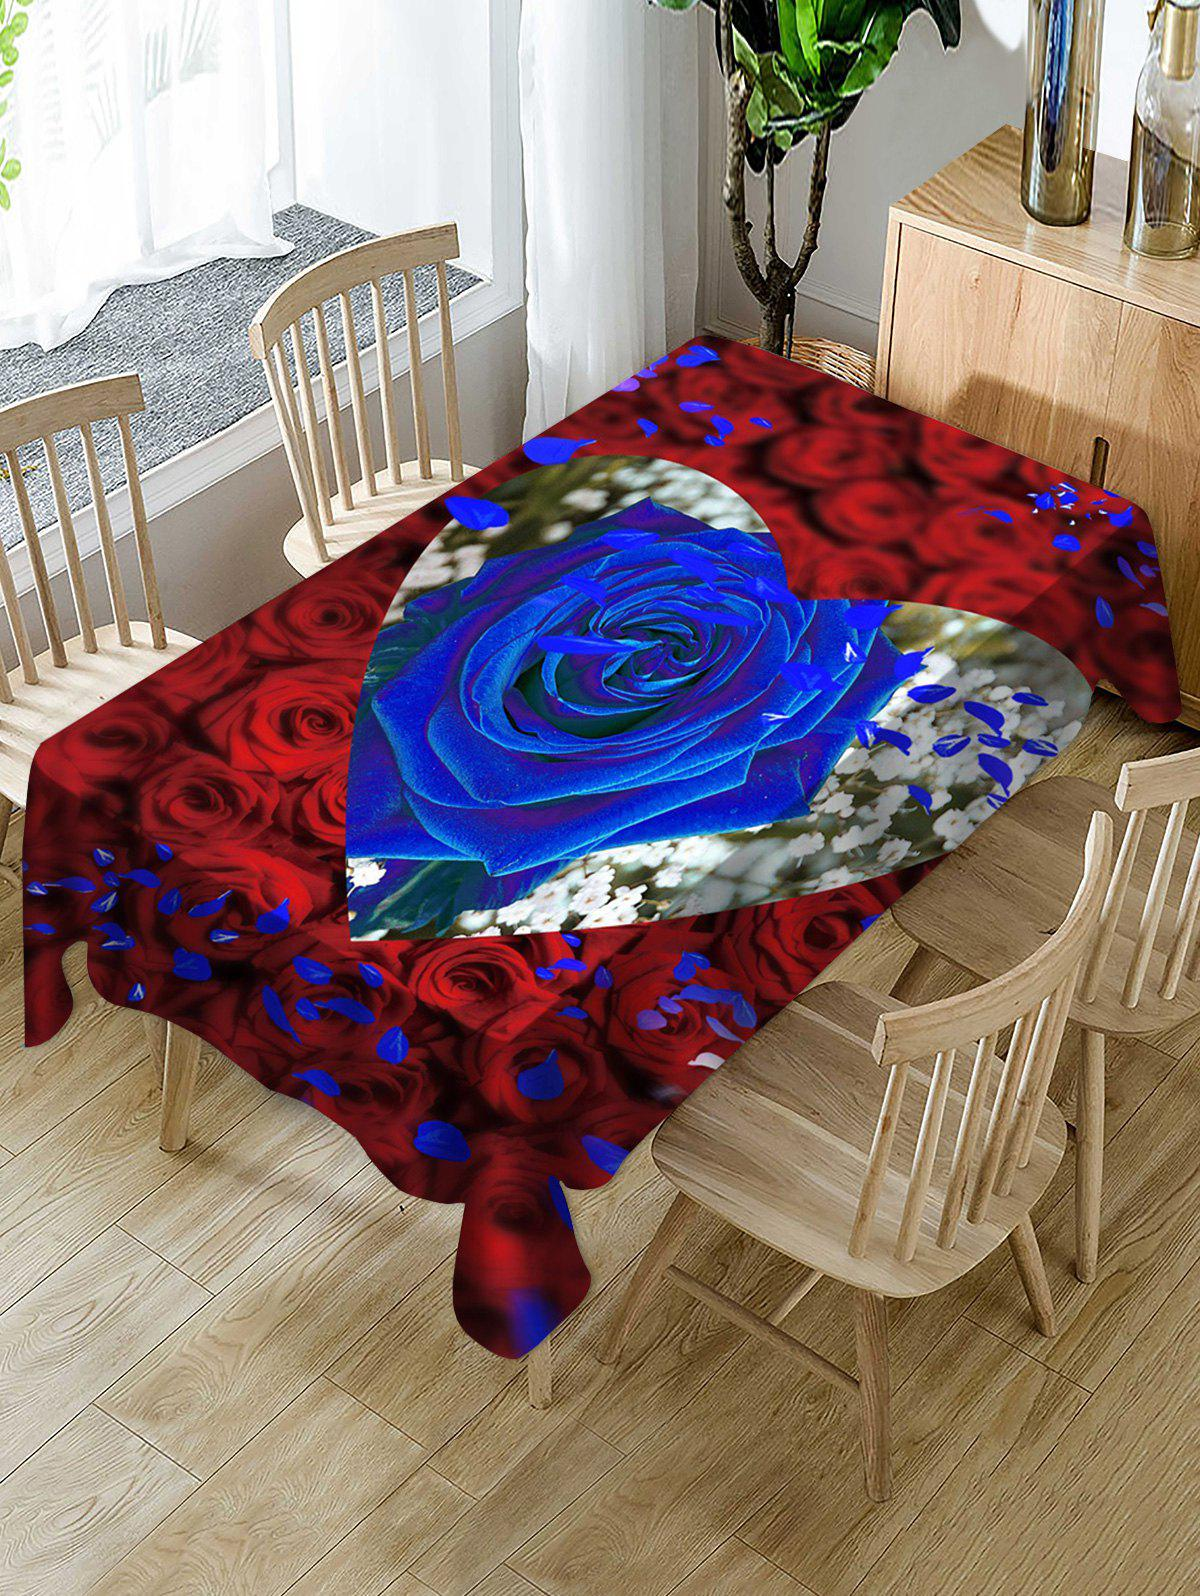 Affordable Valentines Day Rose Heart Print Fabric Waterproof Tablecloth